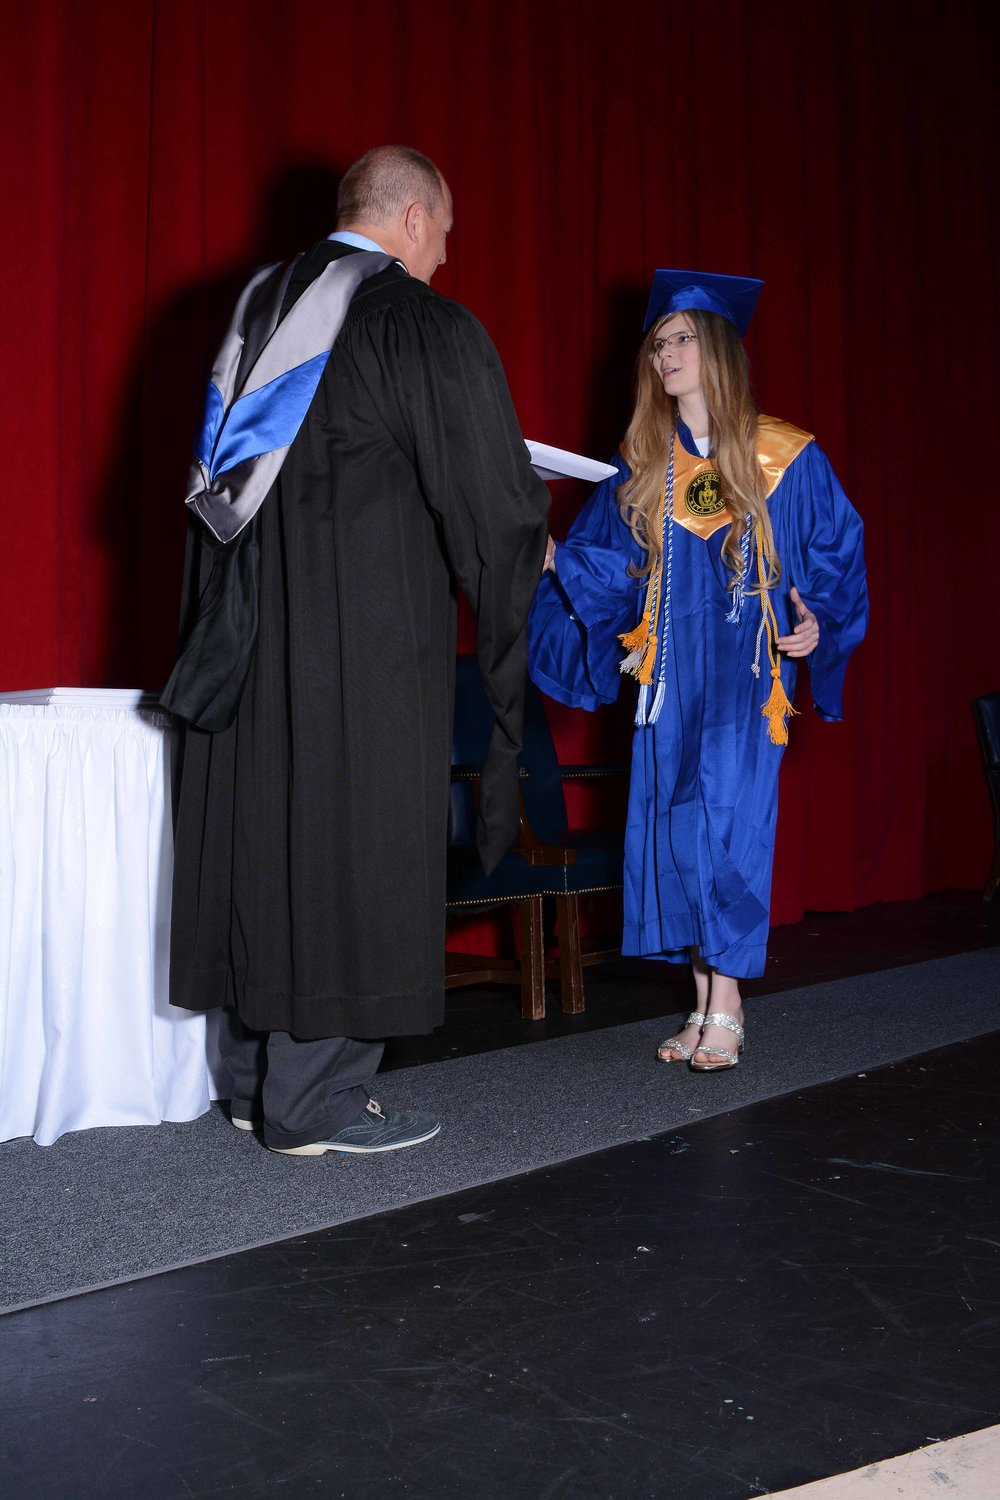 May14 Commencement176.jpg